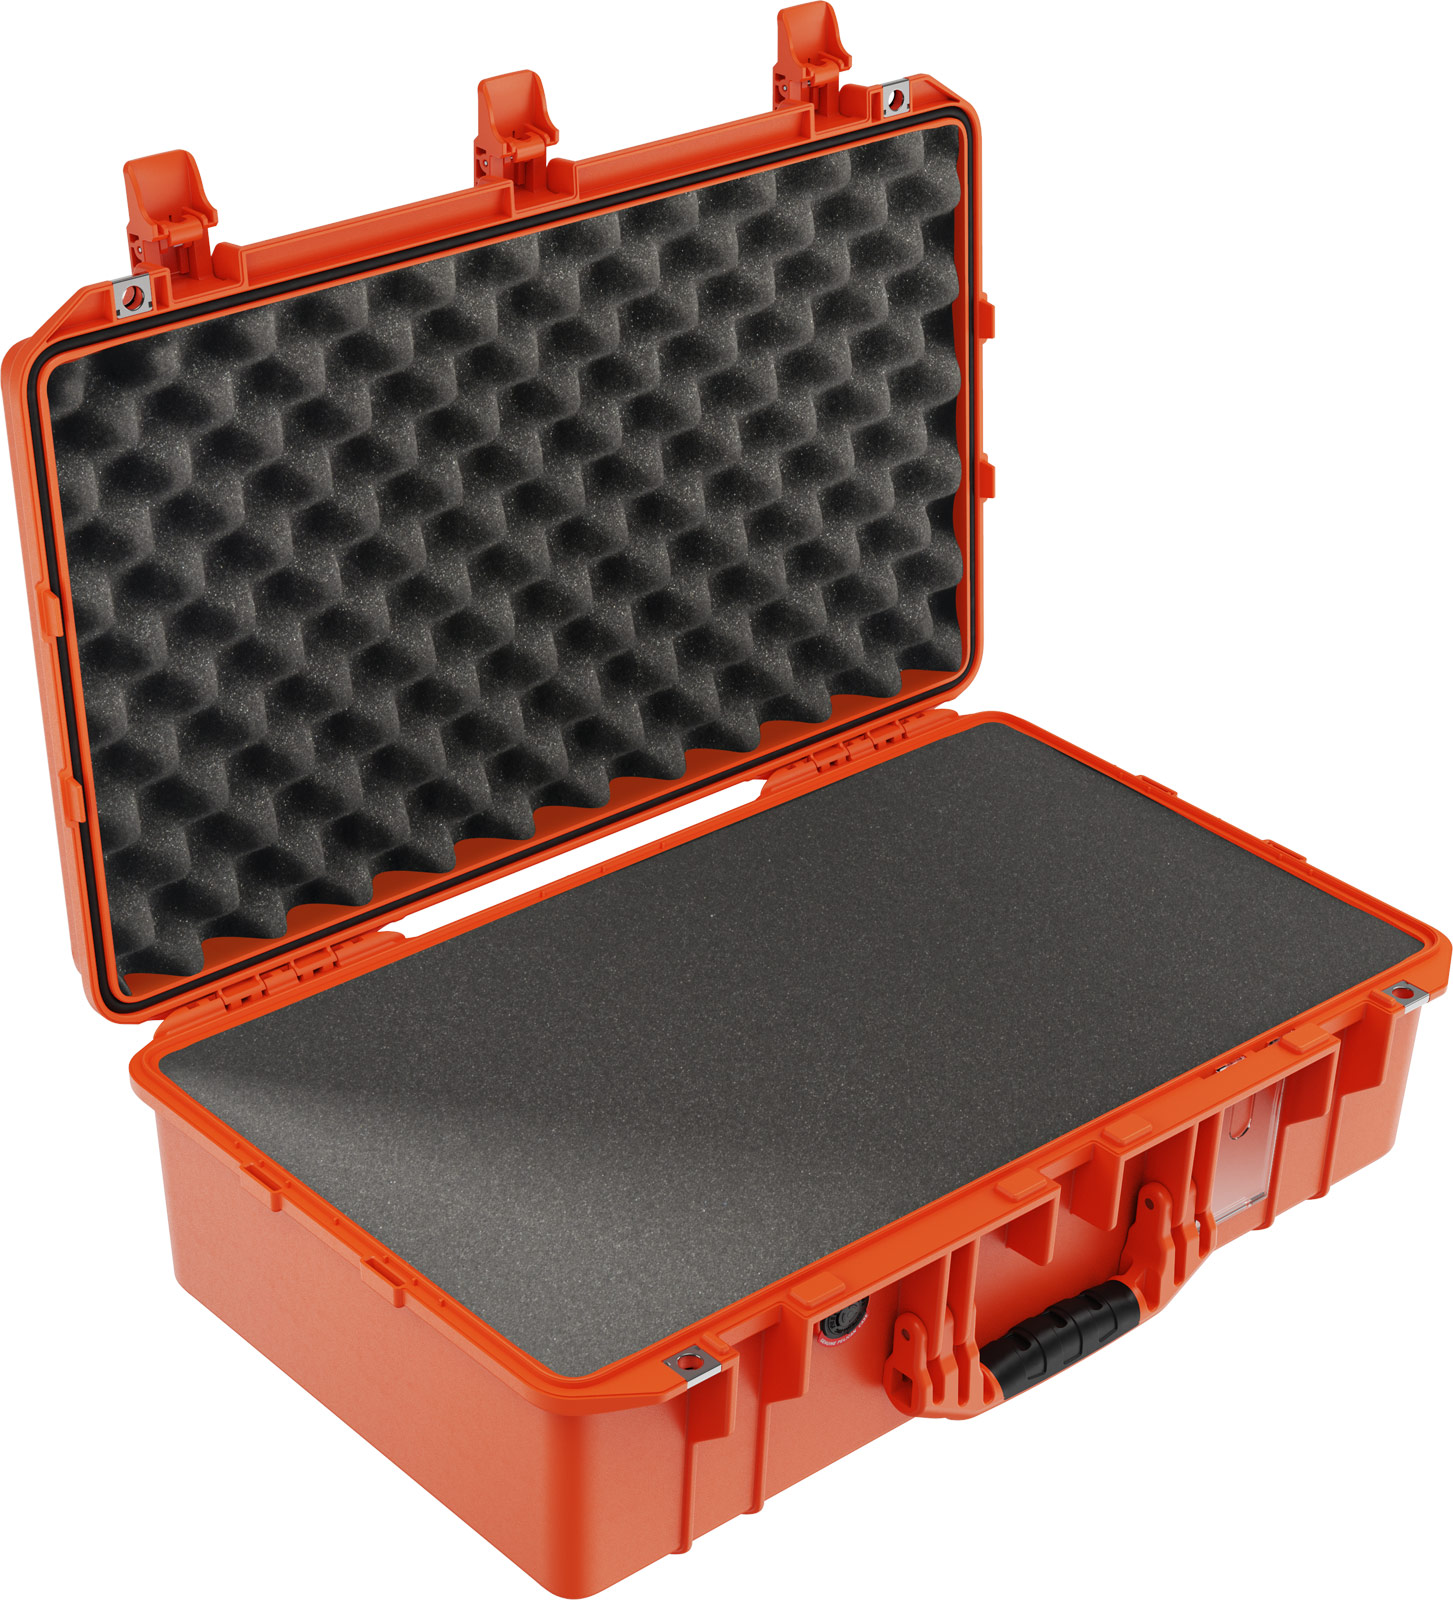 pelican 1555 orange foam waterproof case